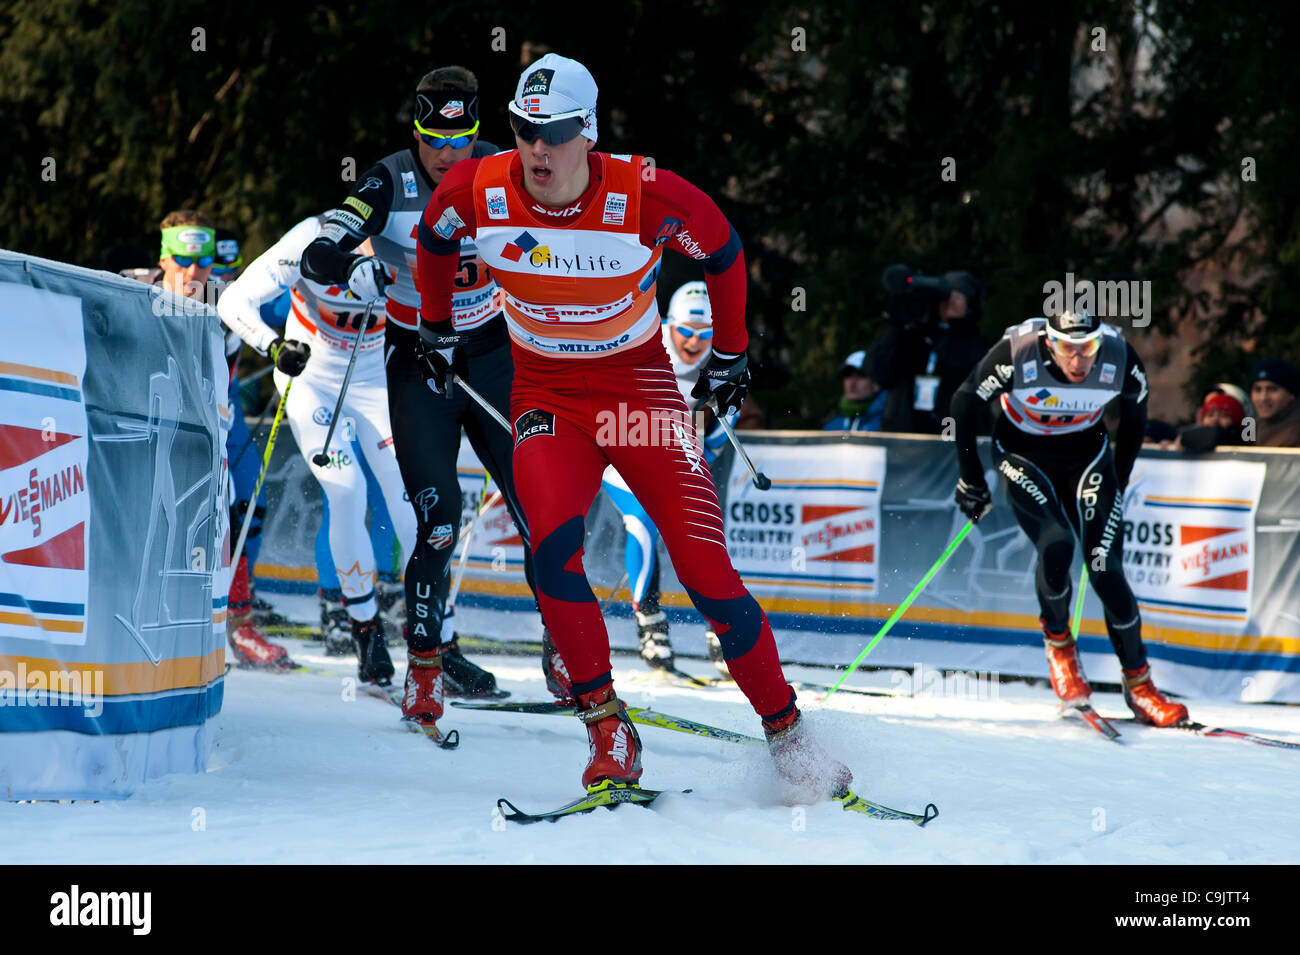 FIS Country Cross World Cup - Milan - Team Relay  staffetta sprint sempione  milano parco - Stock Image